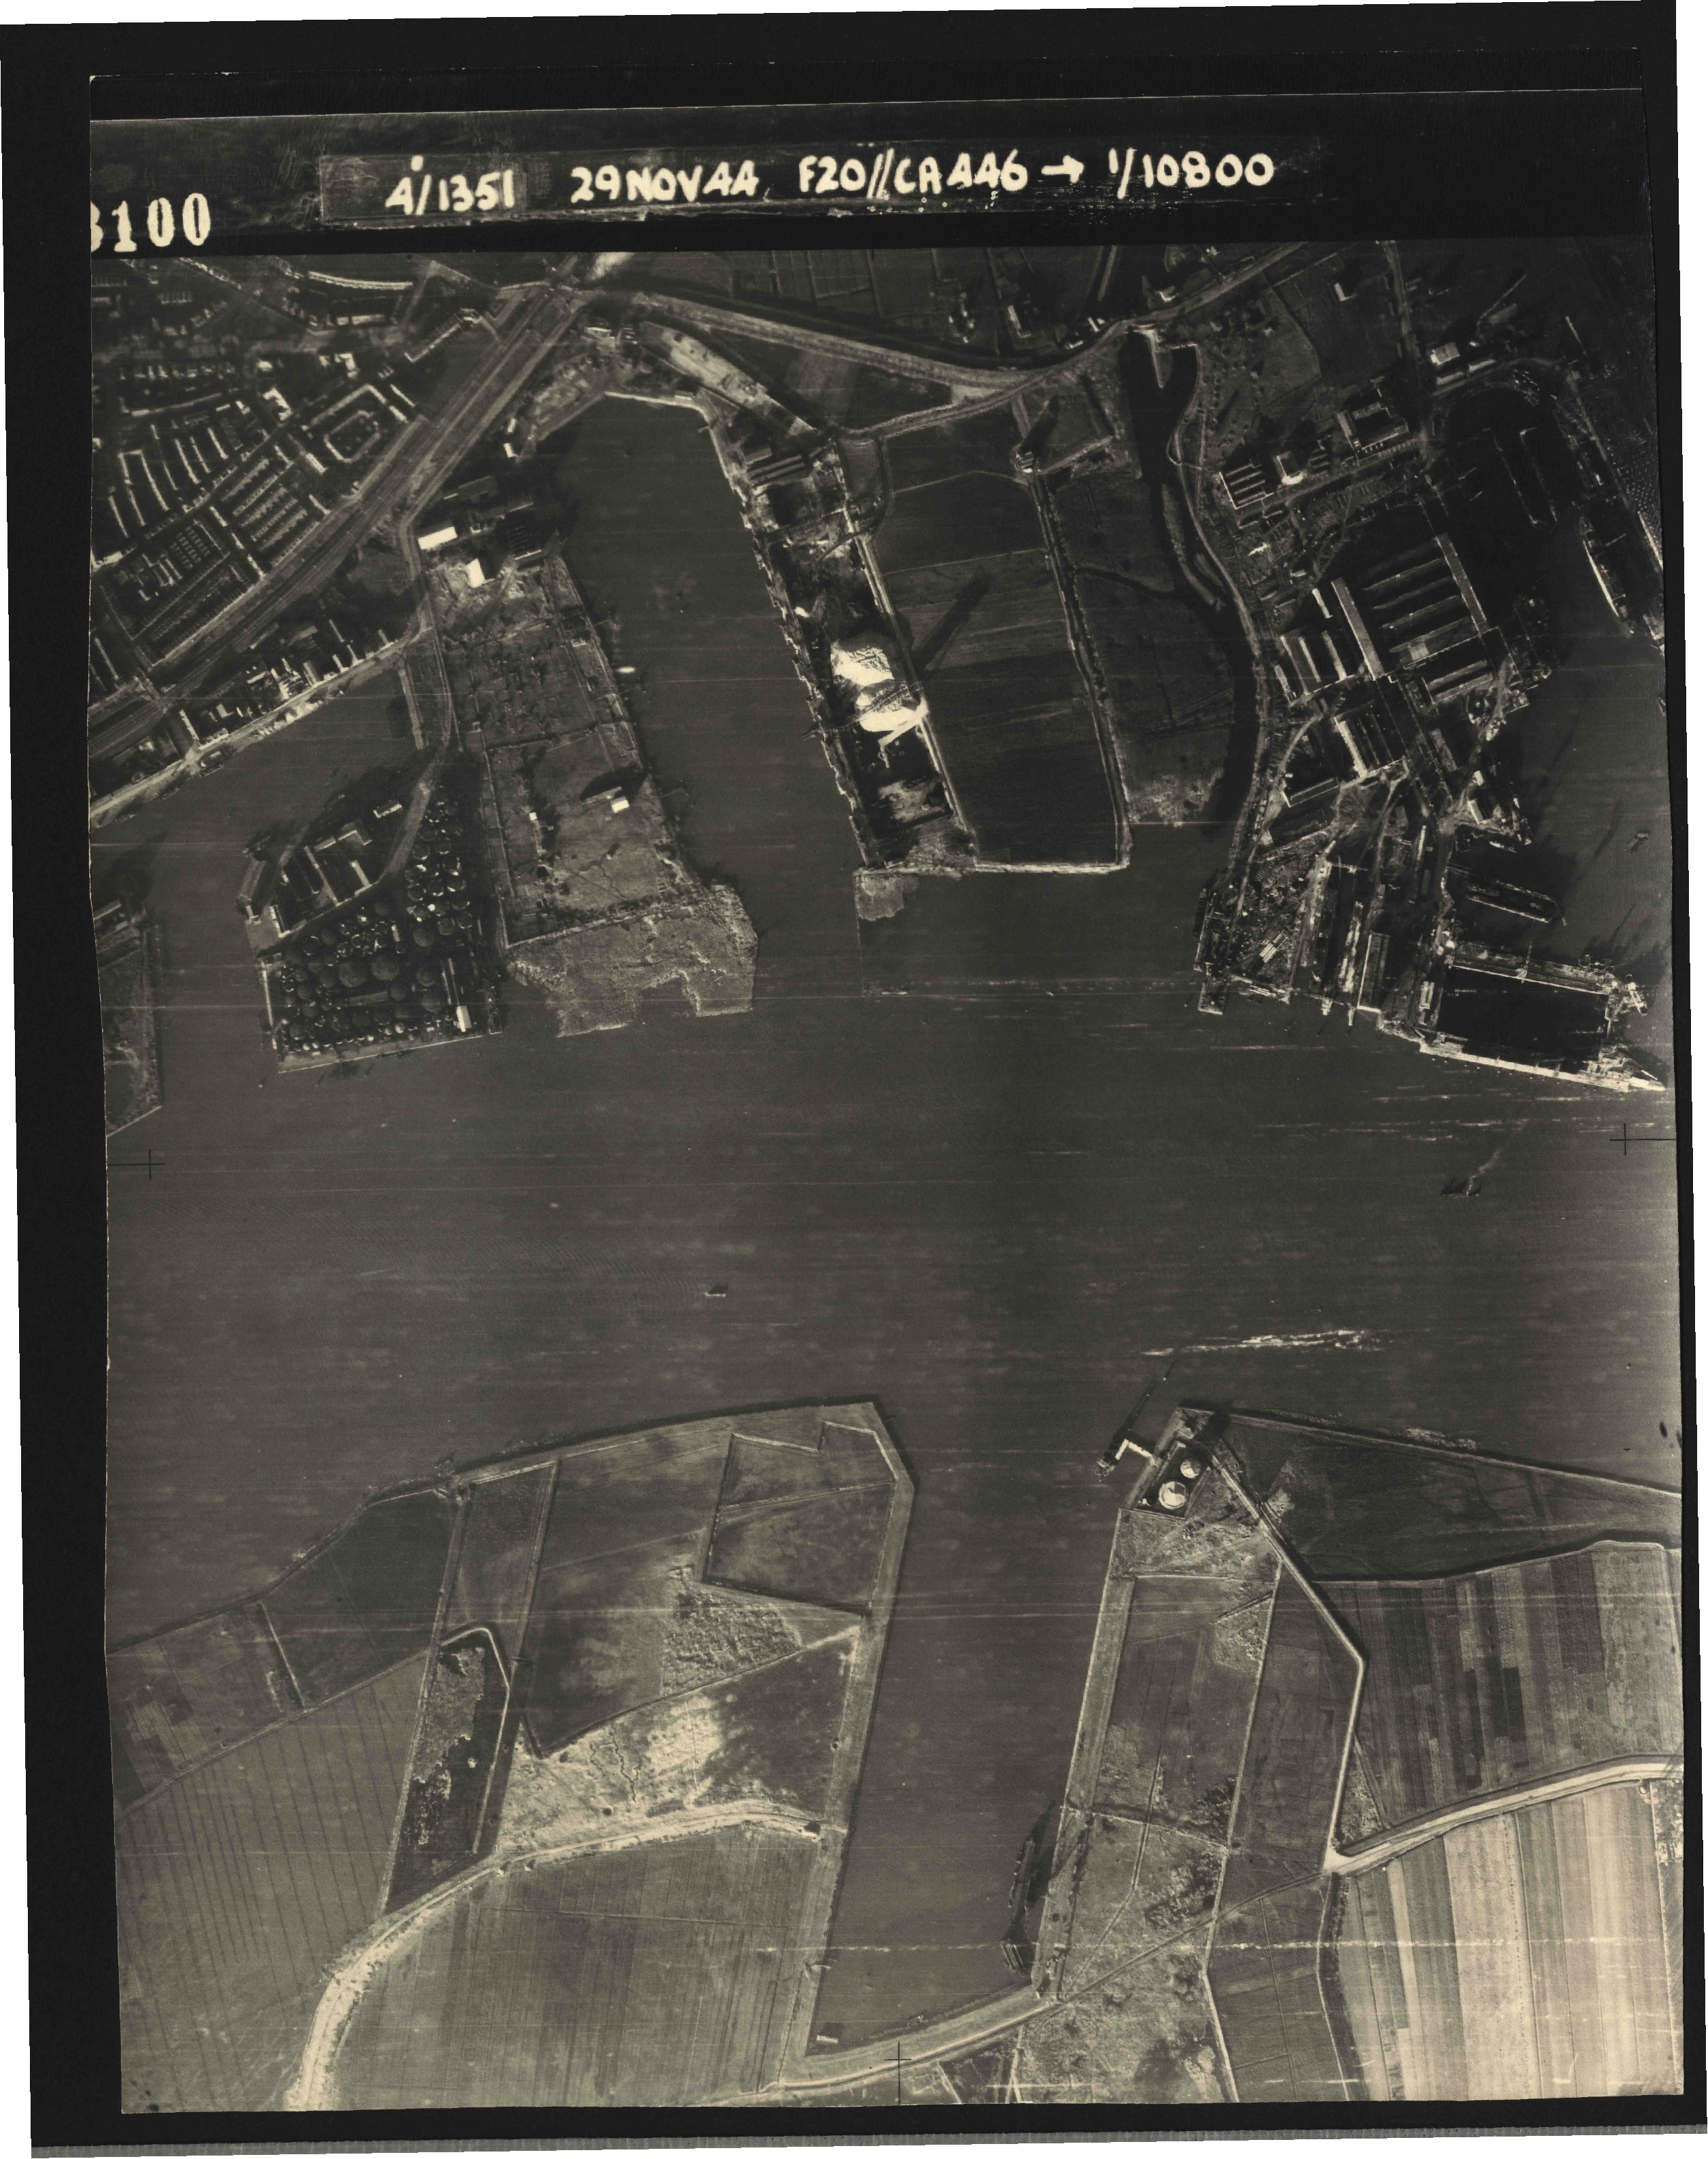 Collection RAF aerial photos 1940-1945 - flight 045, run 02, photo 3100